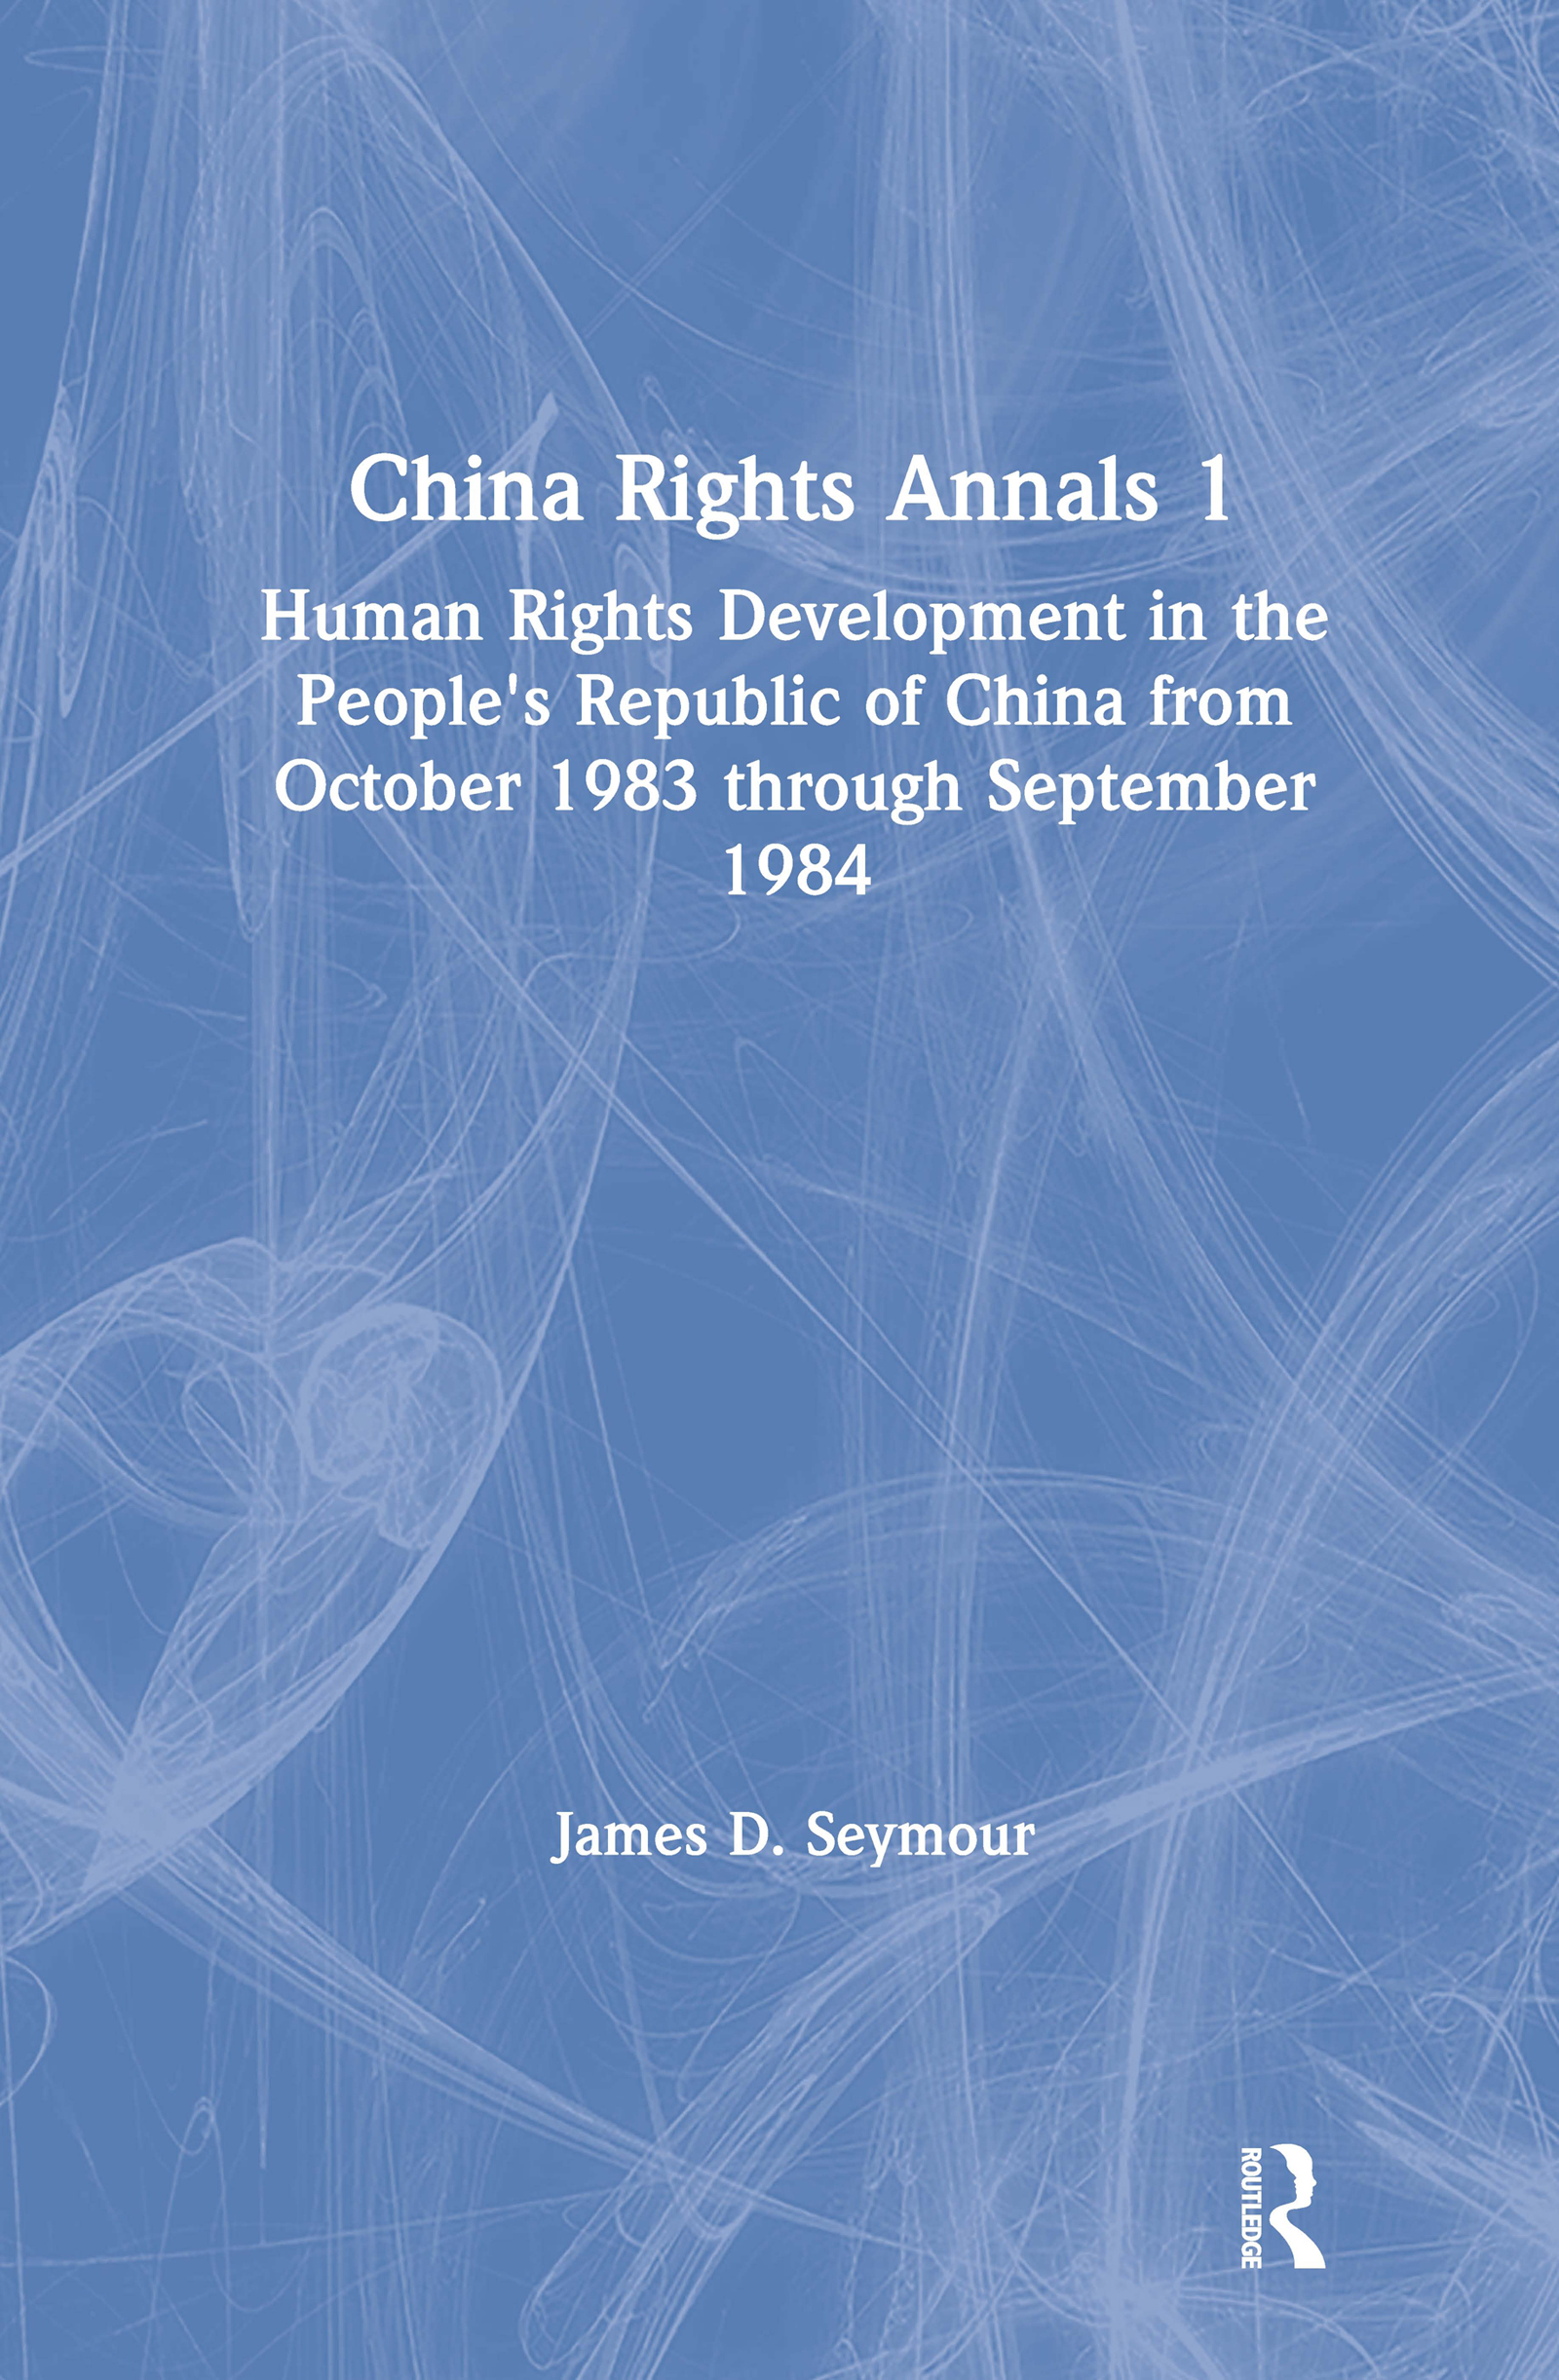 China Rights Annals: Human Rights Development in the People's Republic of China from October 1983 Through September 1984: Human Rights Development in the People's Republic of China from October 1983 Through September 1984, 1st Edition (Hardback) book cover